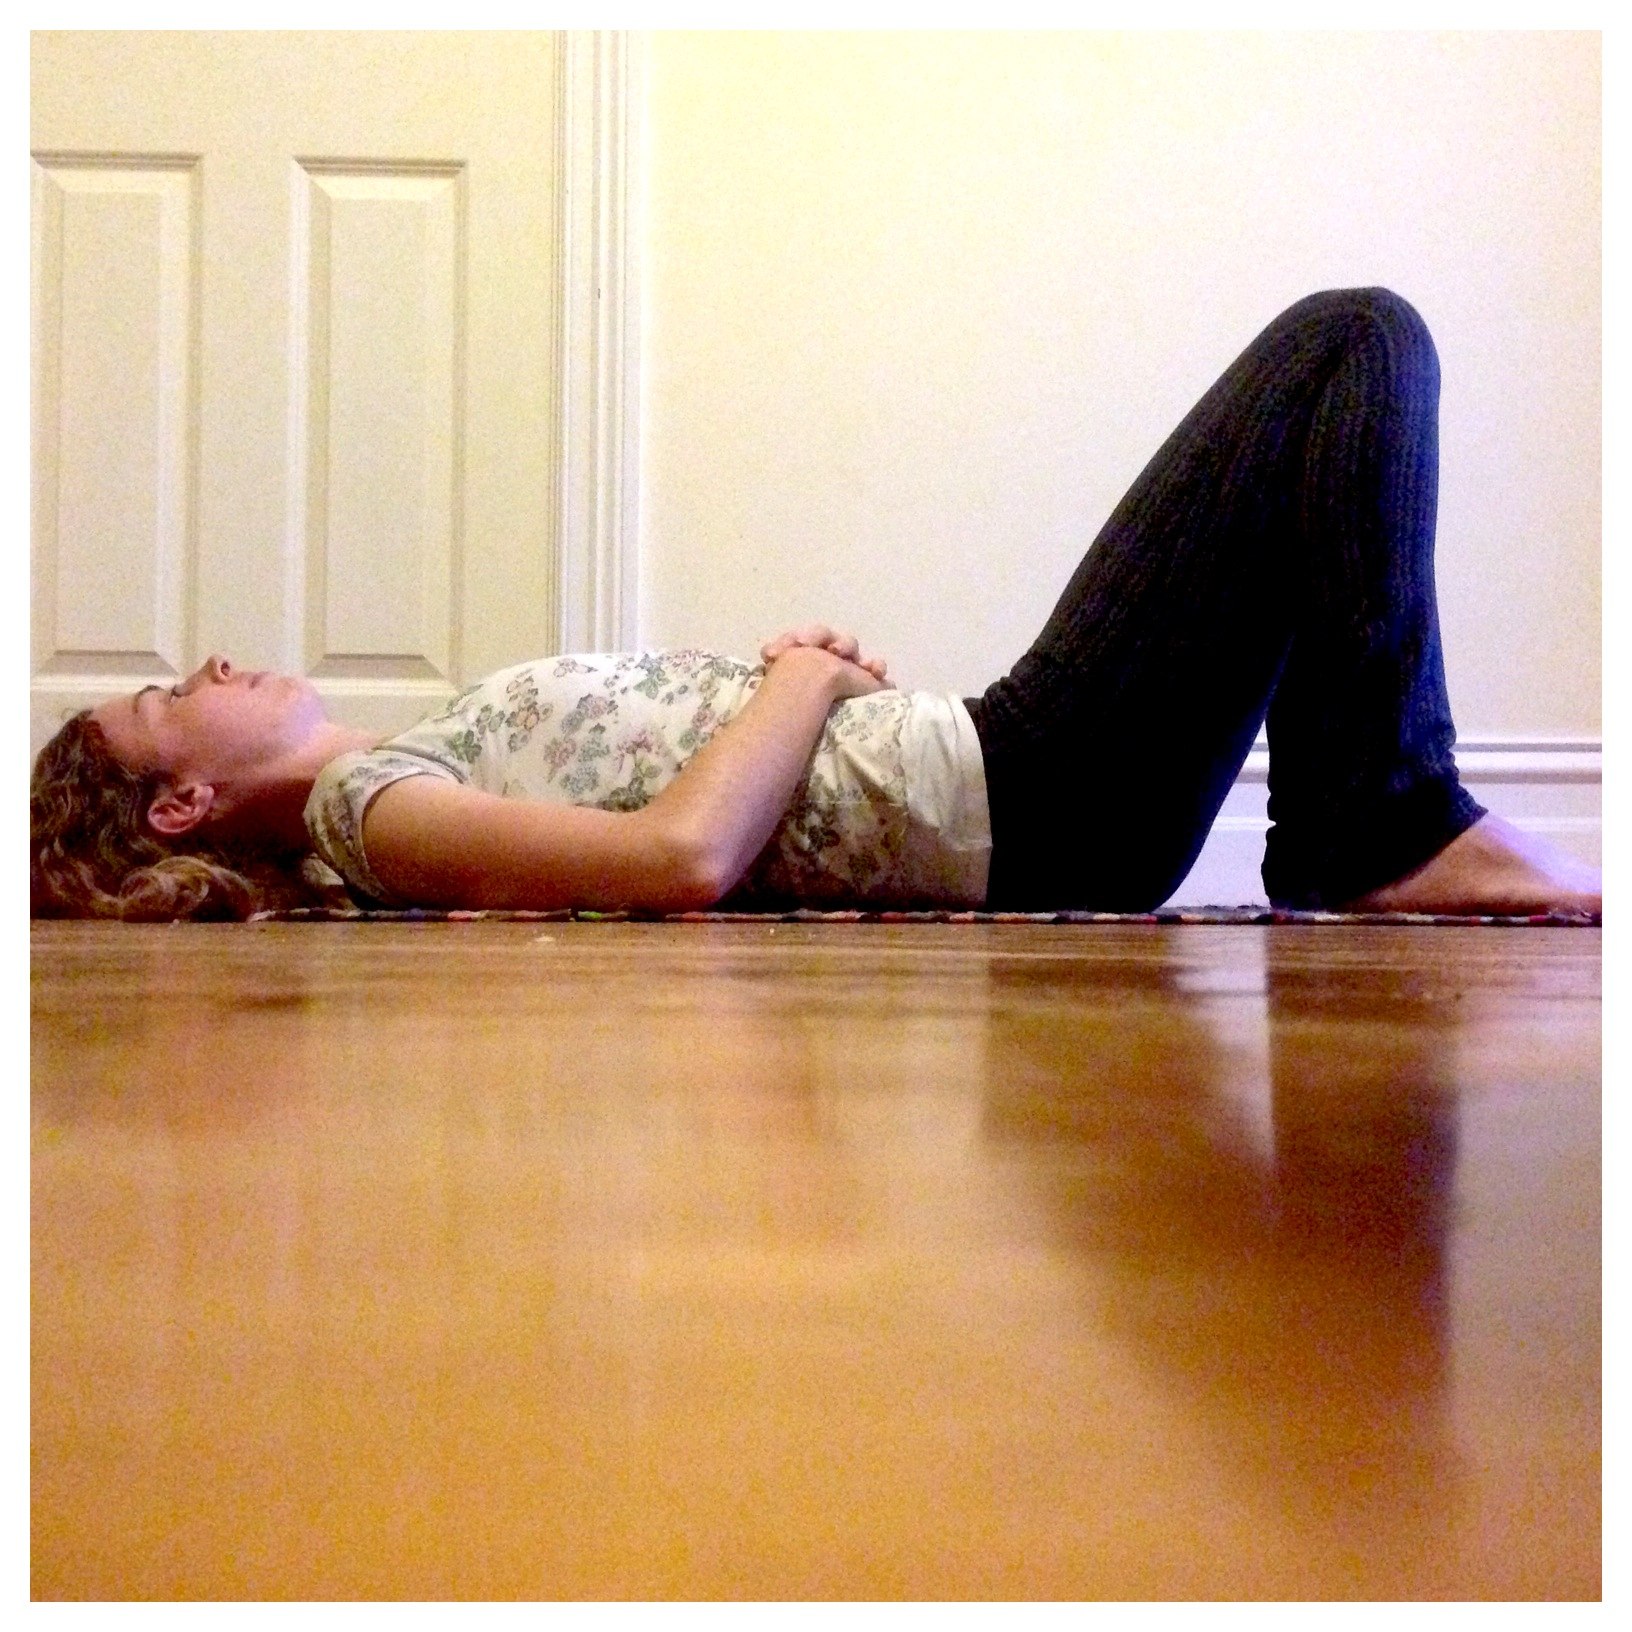 ...or perhaps what I like to refer to as 'constructive rest pose', whichever feels most comfortable for you. (Can you see those tight shoulders I was describing before here, creeping up off the floor?)